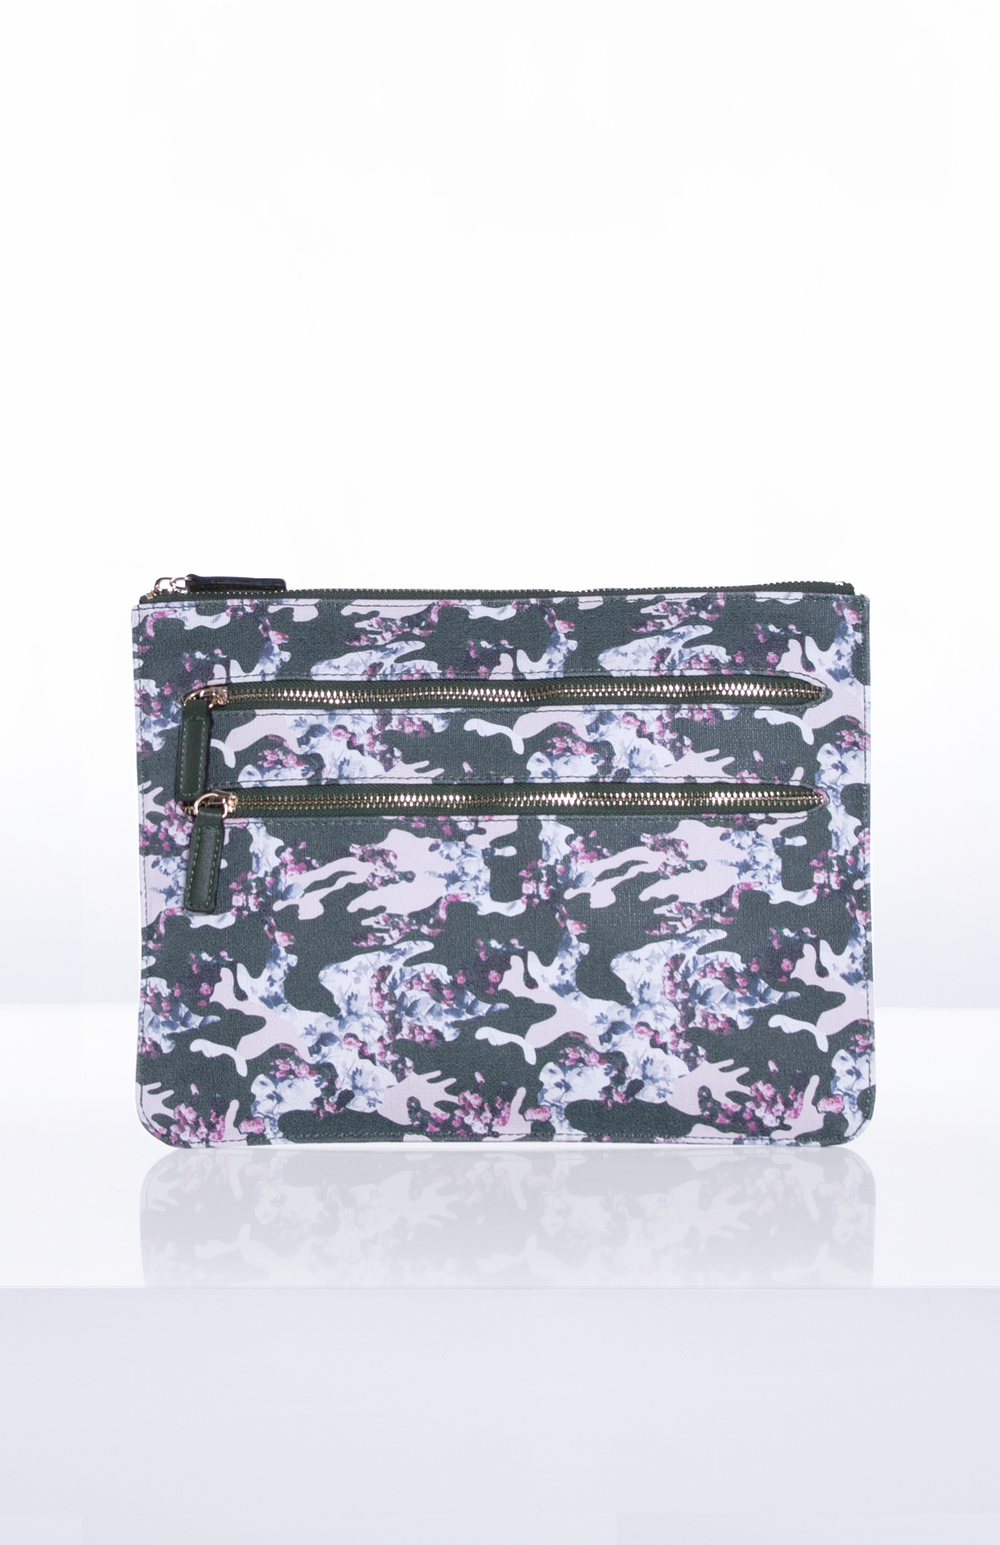 MILLY TECH POUCH- Custom Printed Saffiano (Floral Camo)